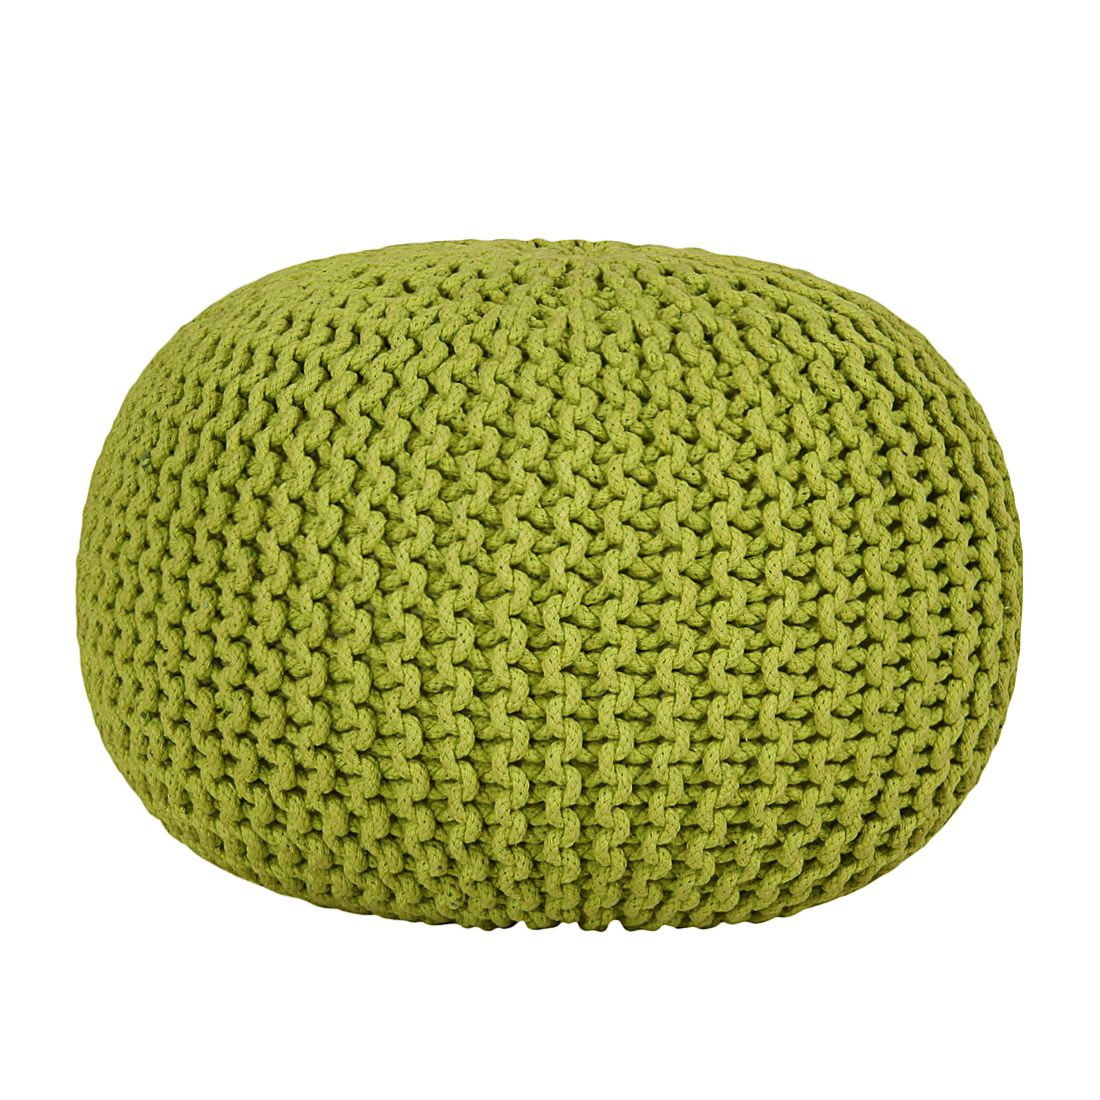 pouf tricot lili vert diam tre 25 cm pictures to pin on pinterest. Black Bedroom Furniture Sets. Home Design Ideas